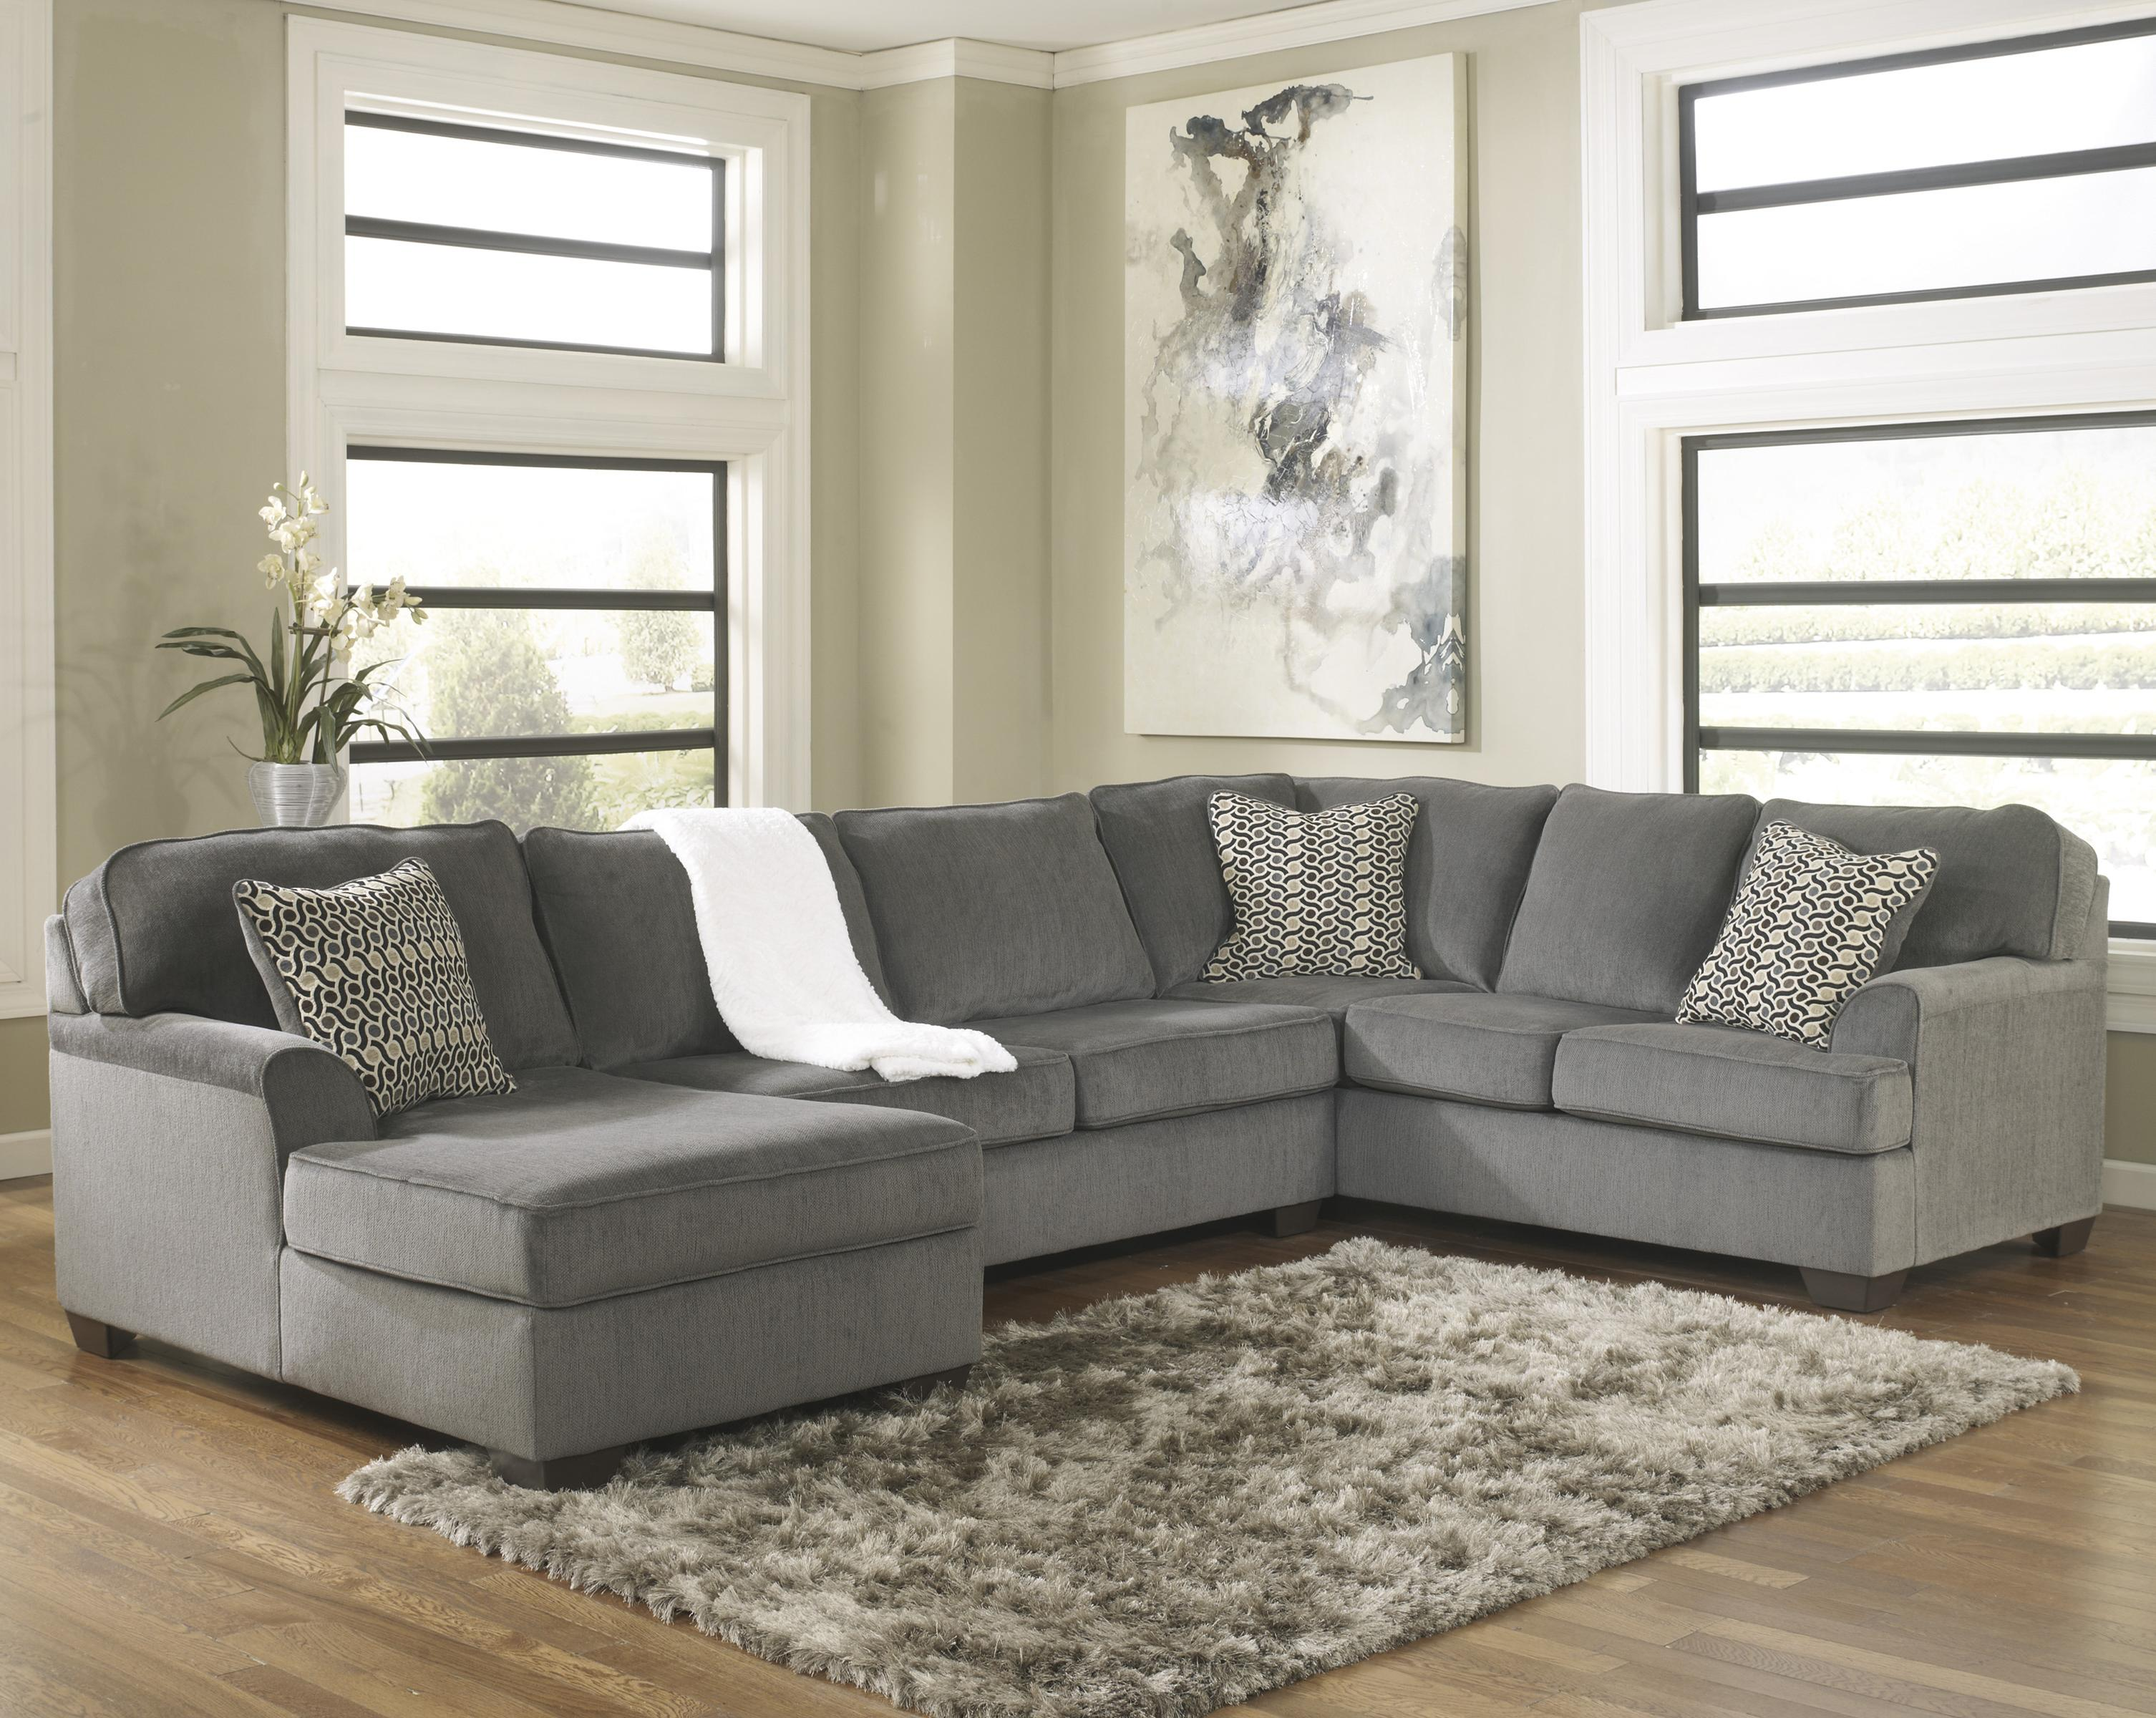 Ashley furniture loric smoke contemporary 3 piece sectional with left chaise john v schultz for Living room sectional furniture